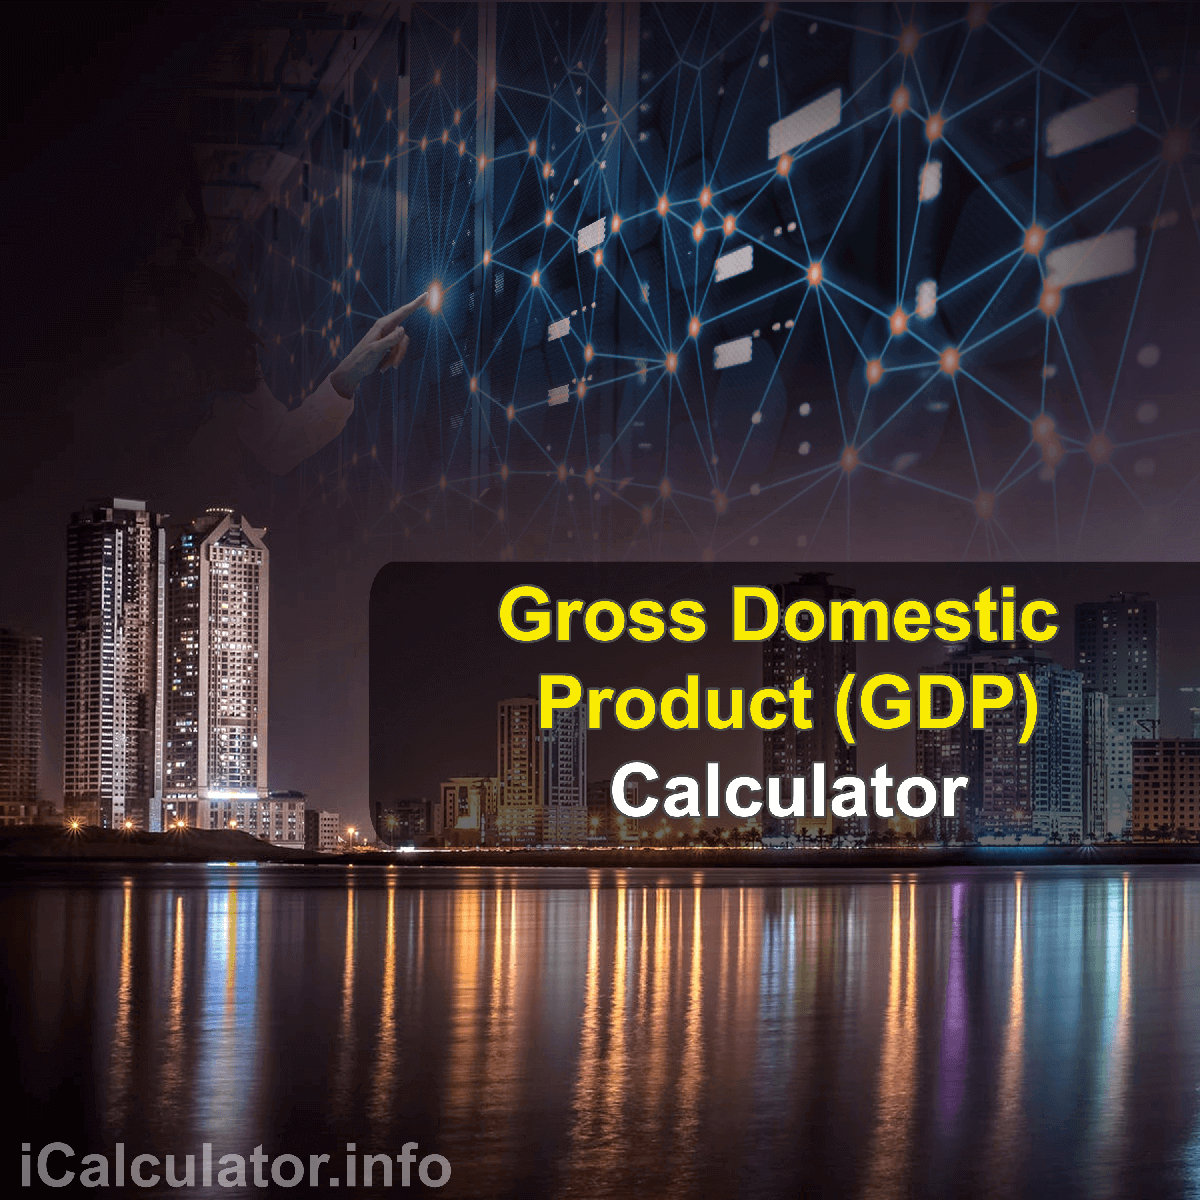 GDP Calculator. This image provides details of how to calculate gross domestic product using a good calculator and notepad. By using the either of the gdp formulas, the GDP Calculator provides a true calculation of the total monetary value of all the goods and services that are produced in a country over a specified period